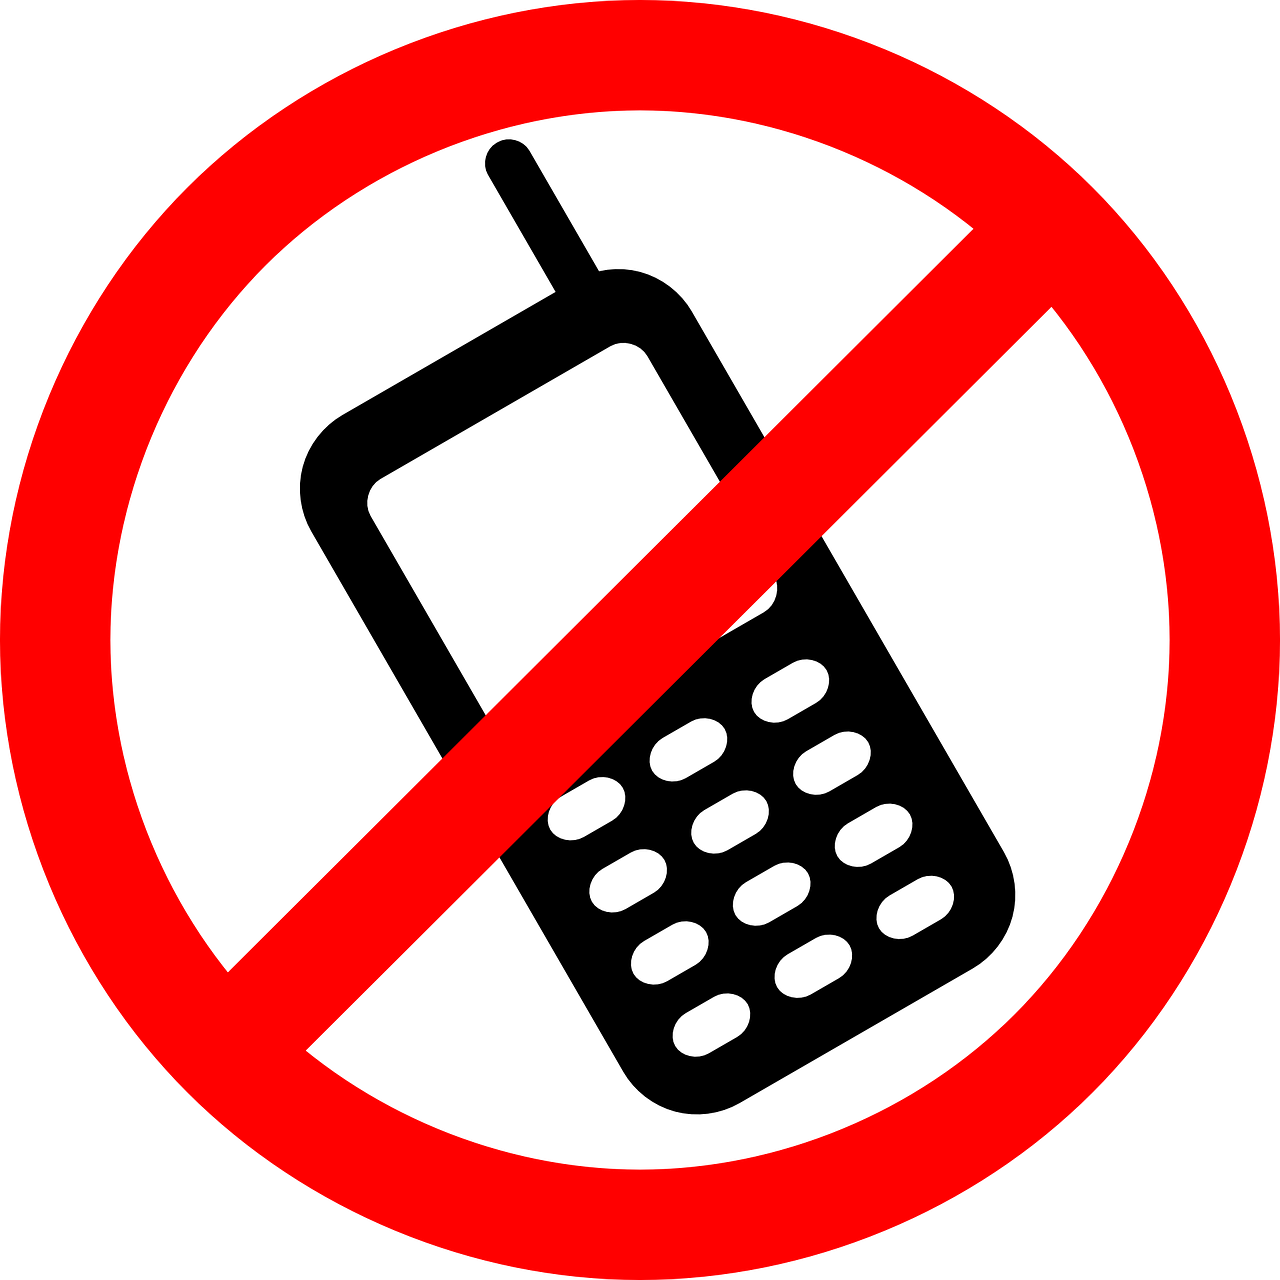 no cellphones,cellphone not allowed,signage,mobiles,not,allowed,not permitted,forbidden,no,icon,symbol,sign,stop,ban,prohibited,forbid,zone,free vector graphics,free pictures, free photos, free images, royalty free, free illustrations, public domain